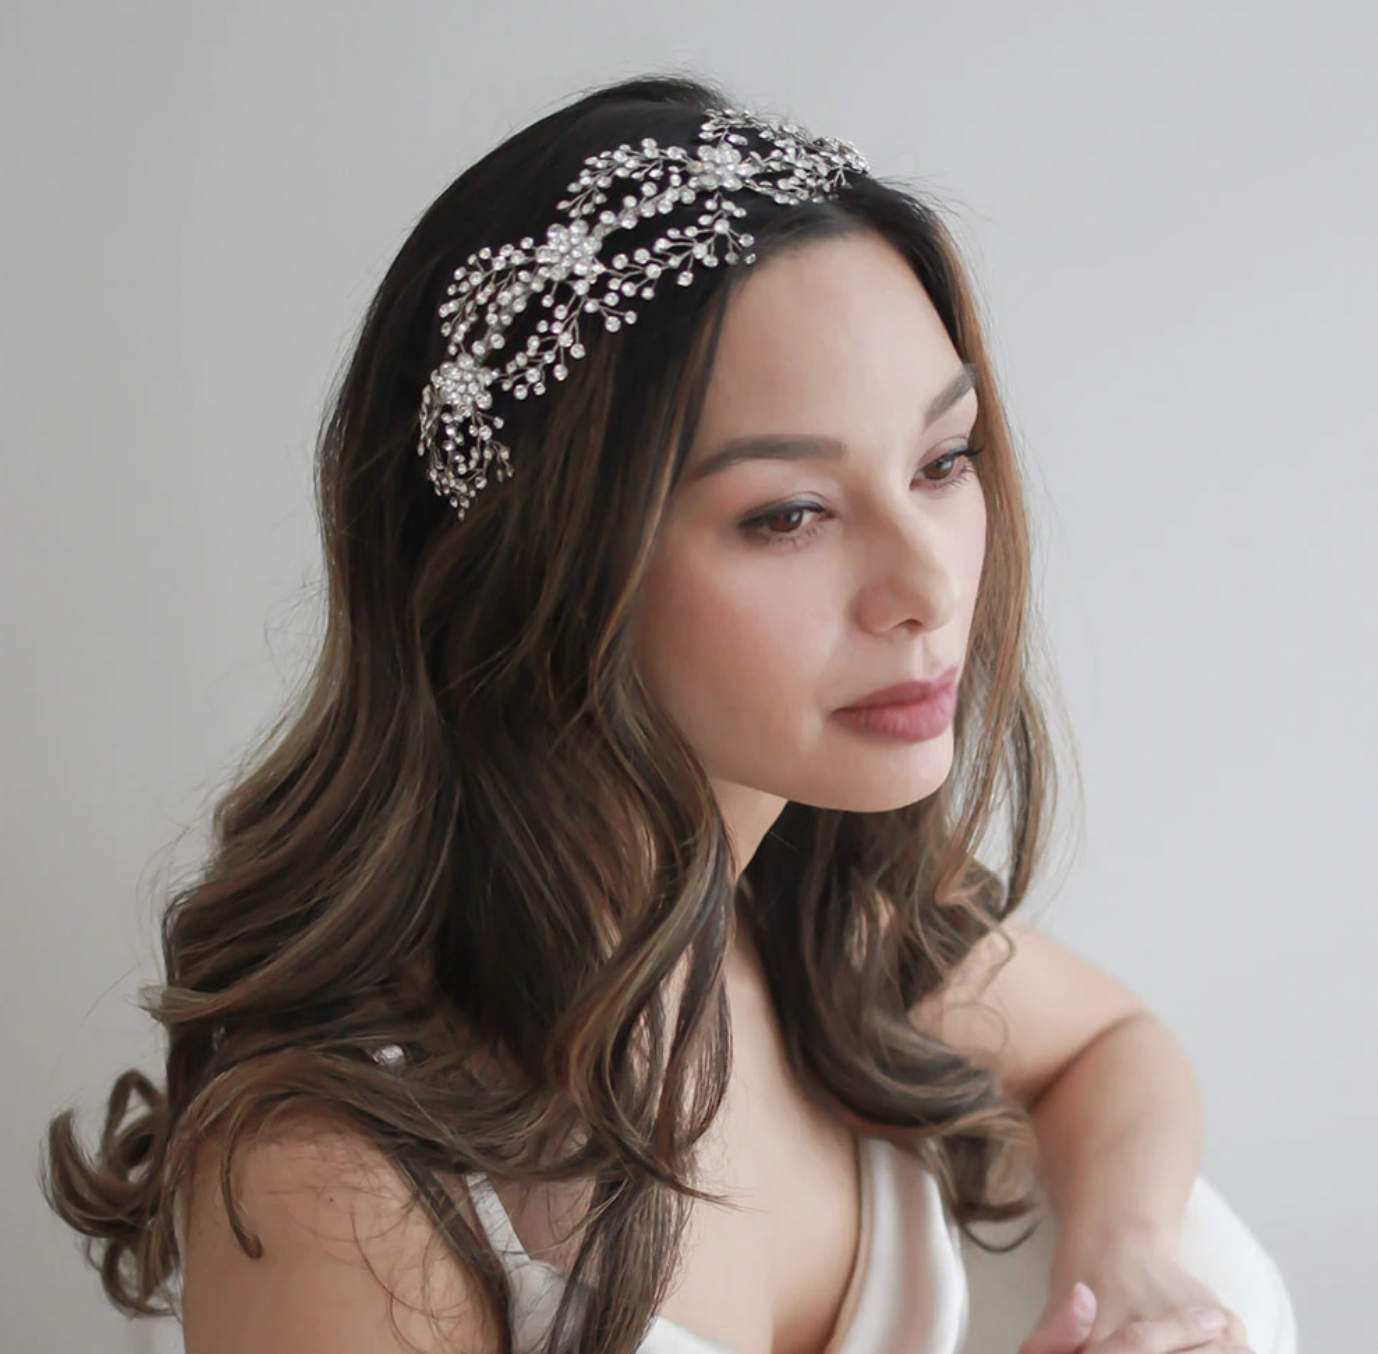 Breathtaking Botanical Floral Couture Headband